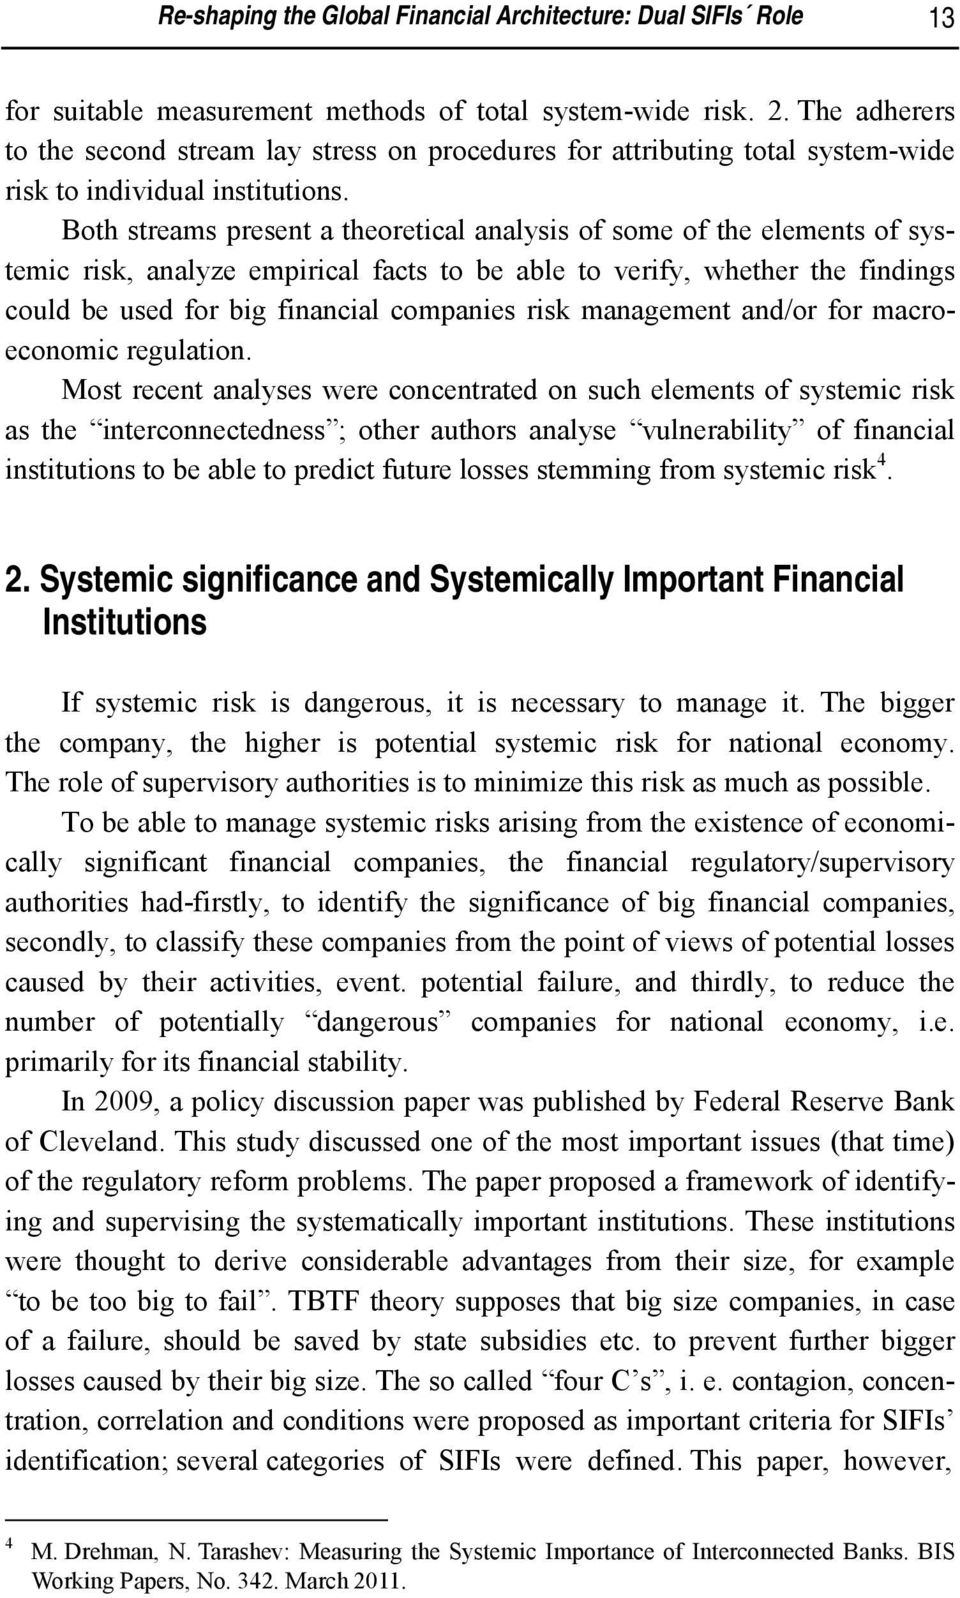 Both streams present a theoretical analysis of some of the elements of systemic risk, analyze empirical facts to be able to verify, whether the findings could be used for big financial companies risk